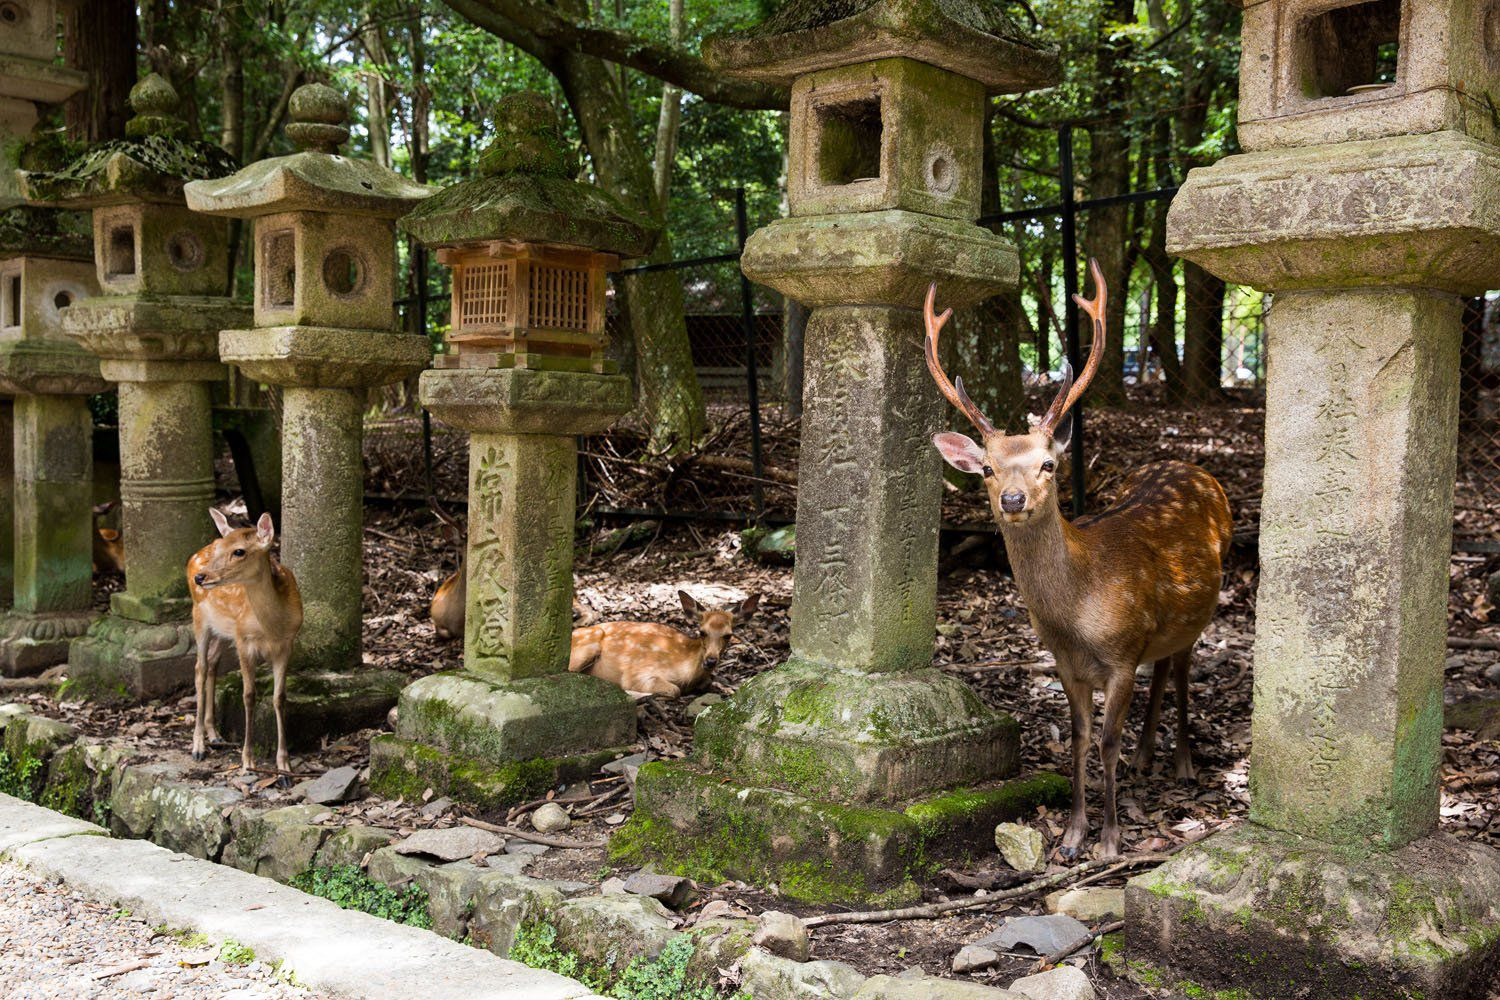 Feeding Deer In Nara An